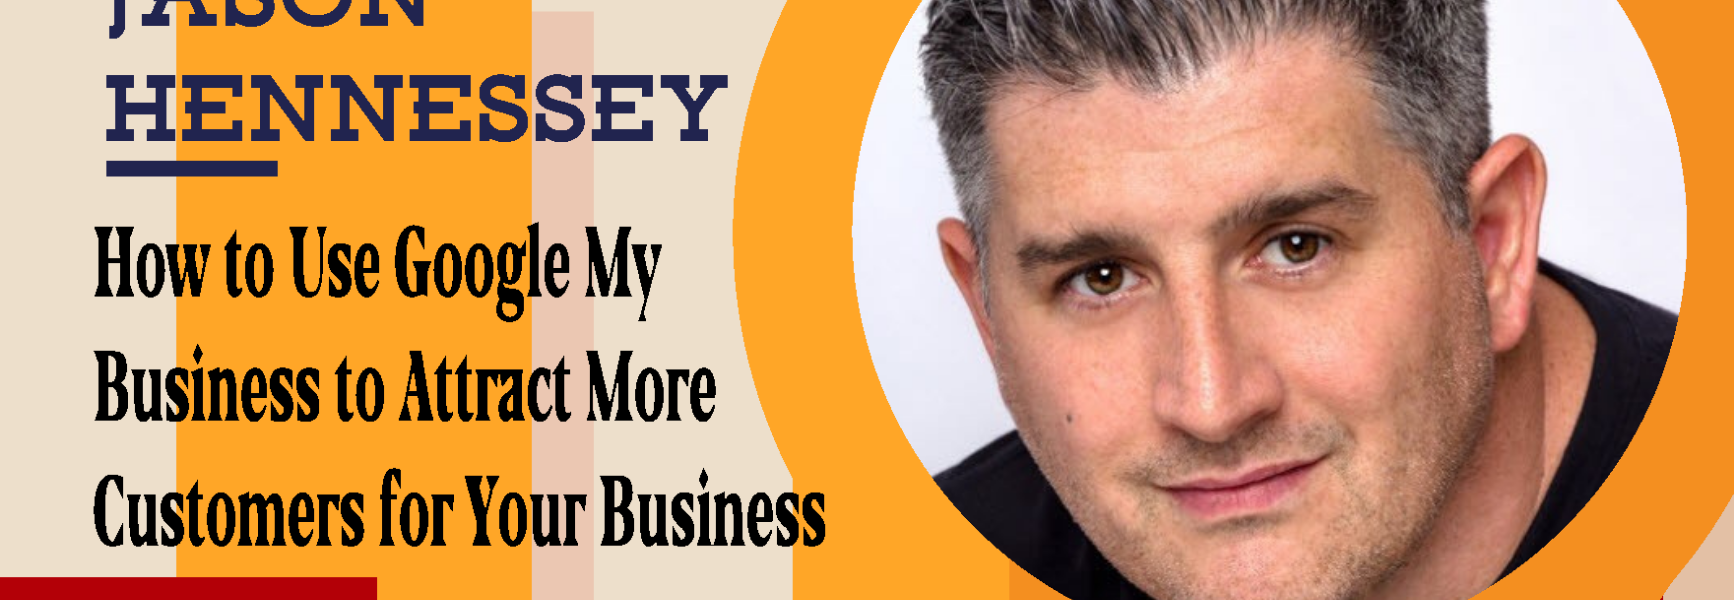 How to Use Google My Business to Attract More Customers for Your Business with Jason Hennessey